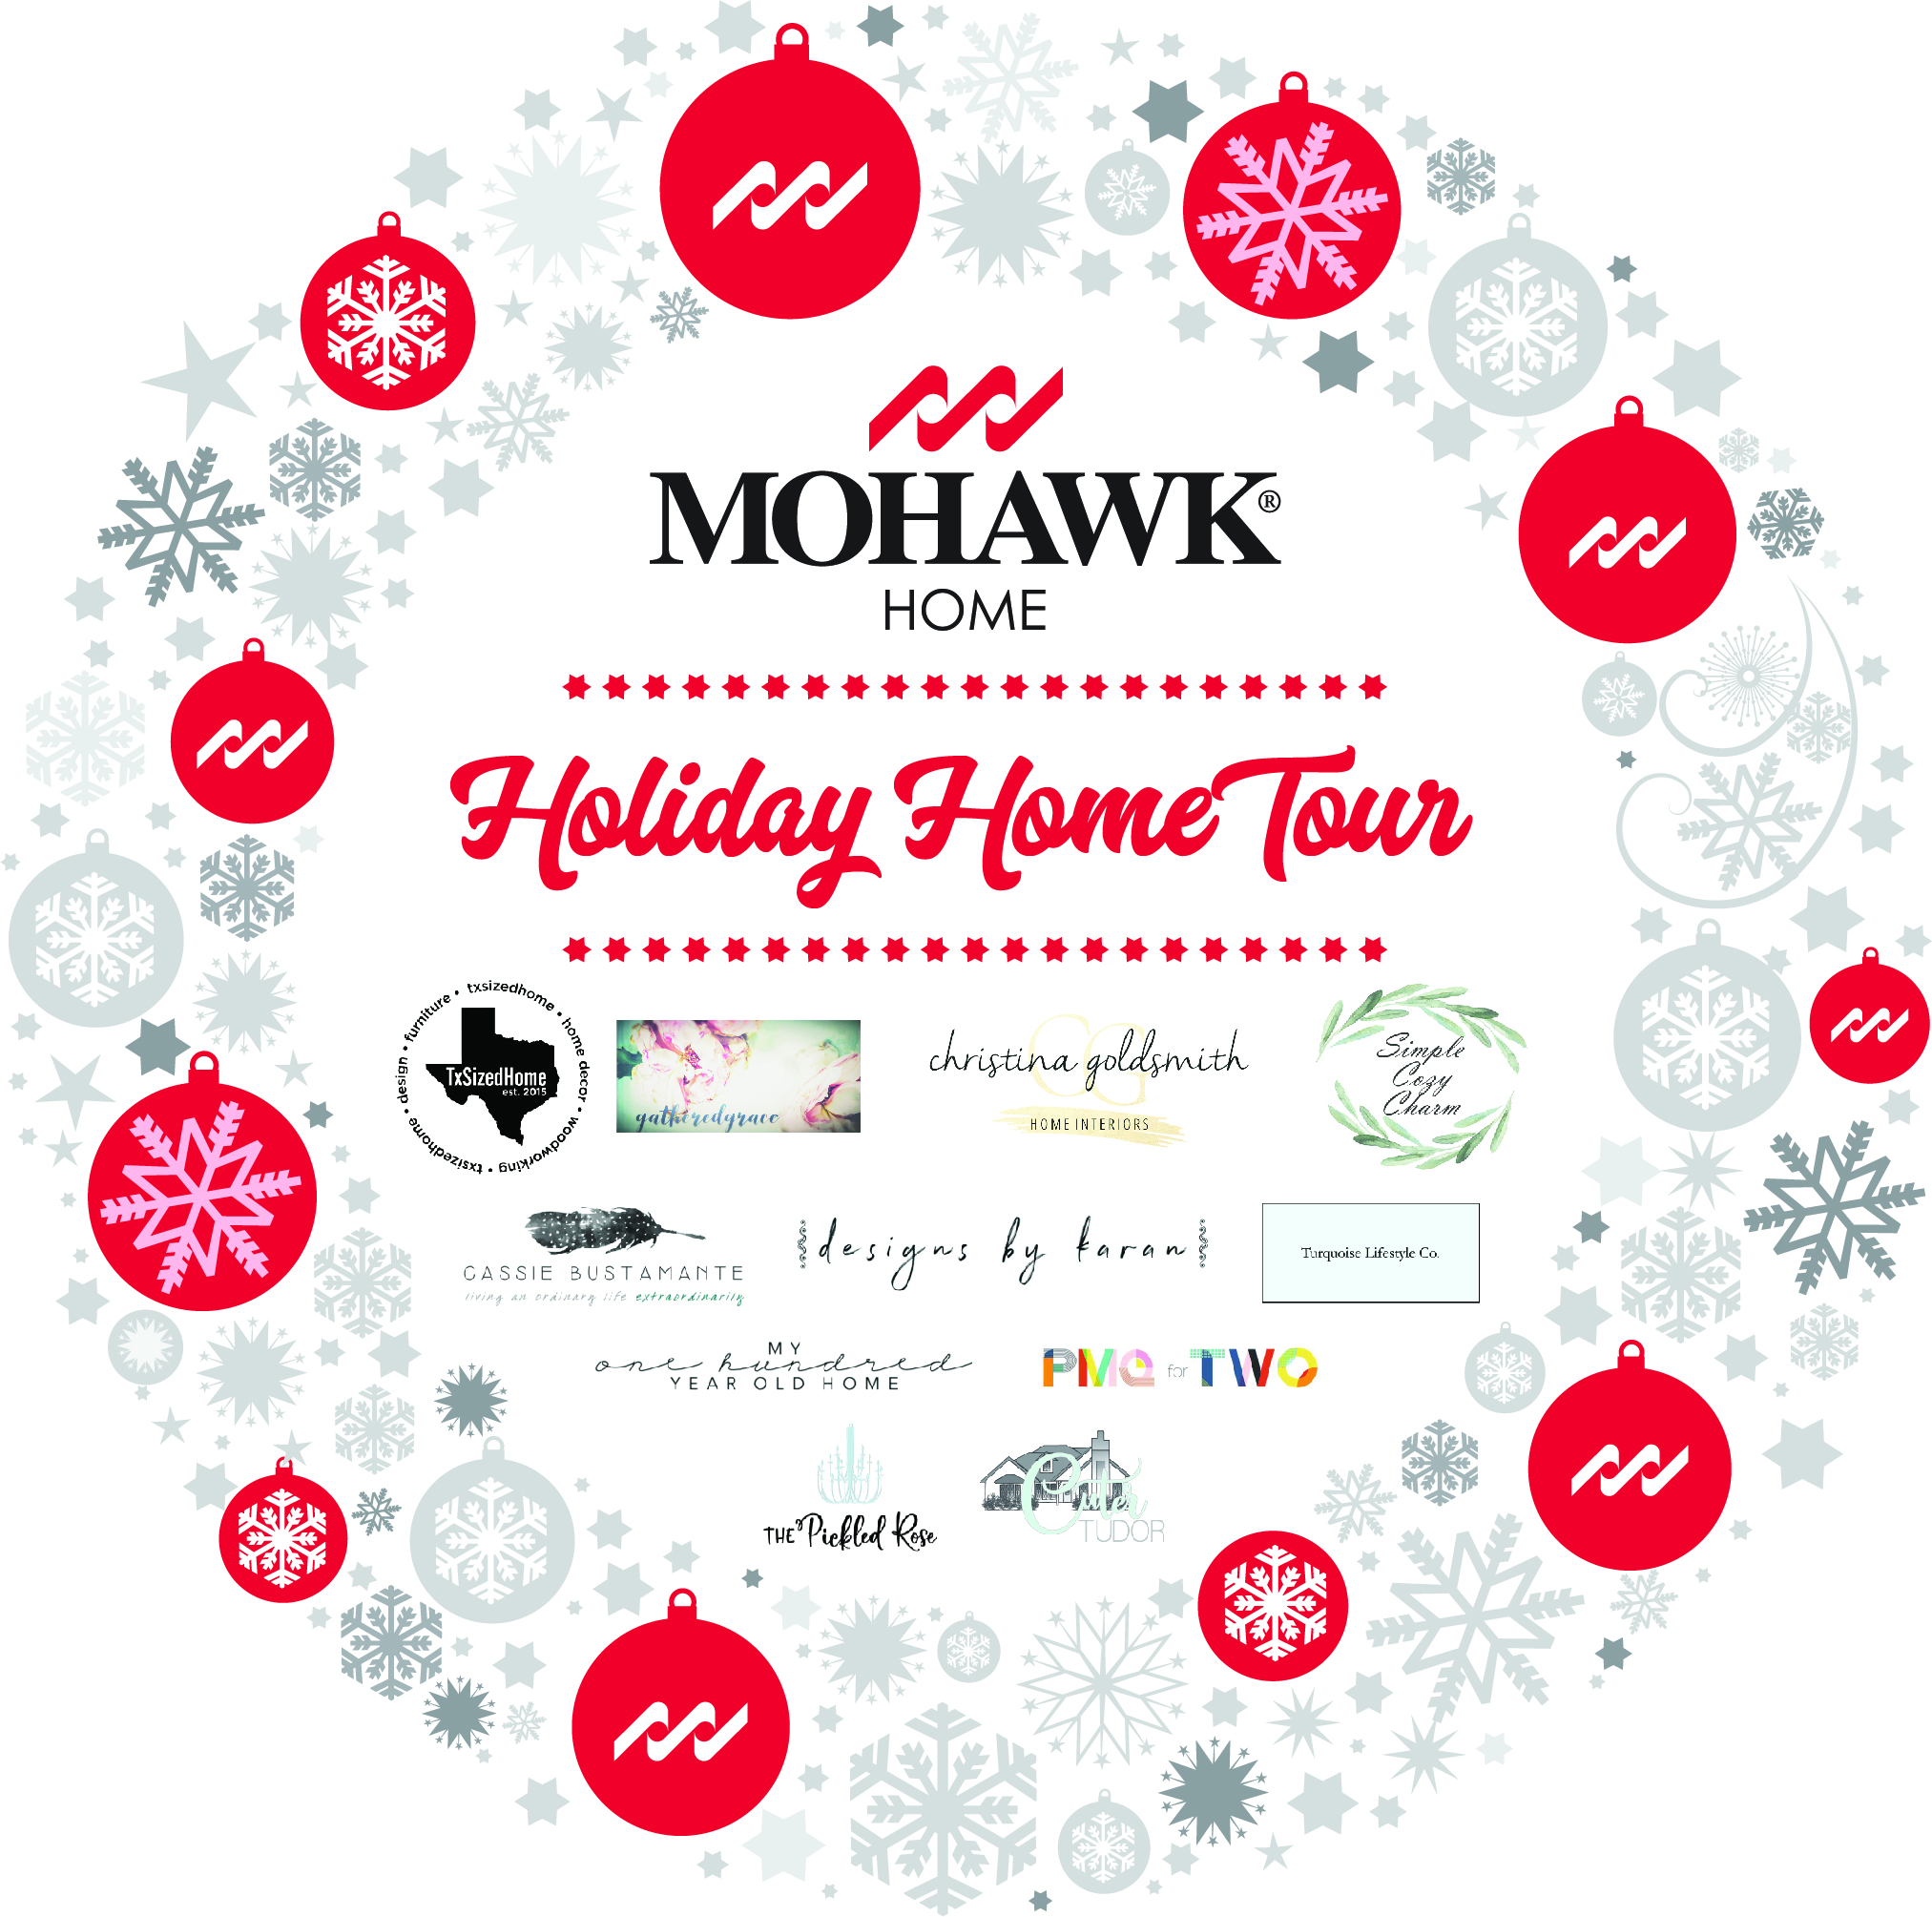 Holiday Home Blog Tour | Mohawk Home